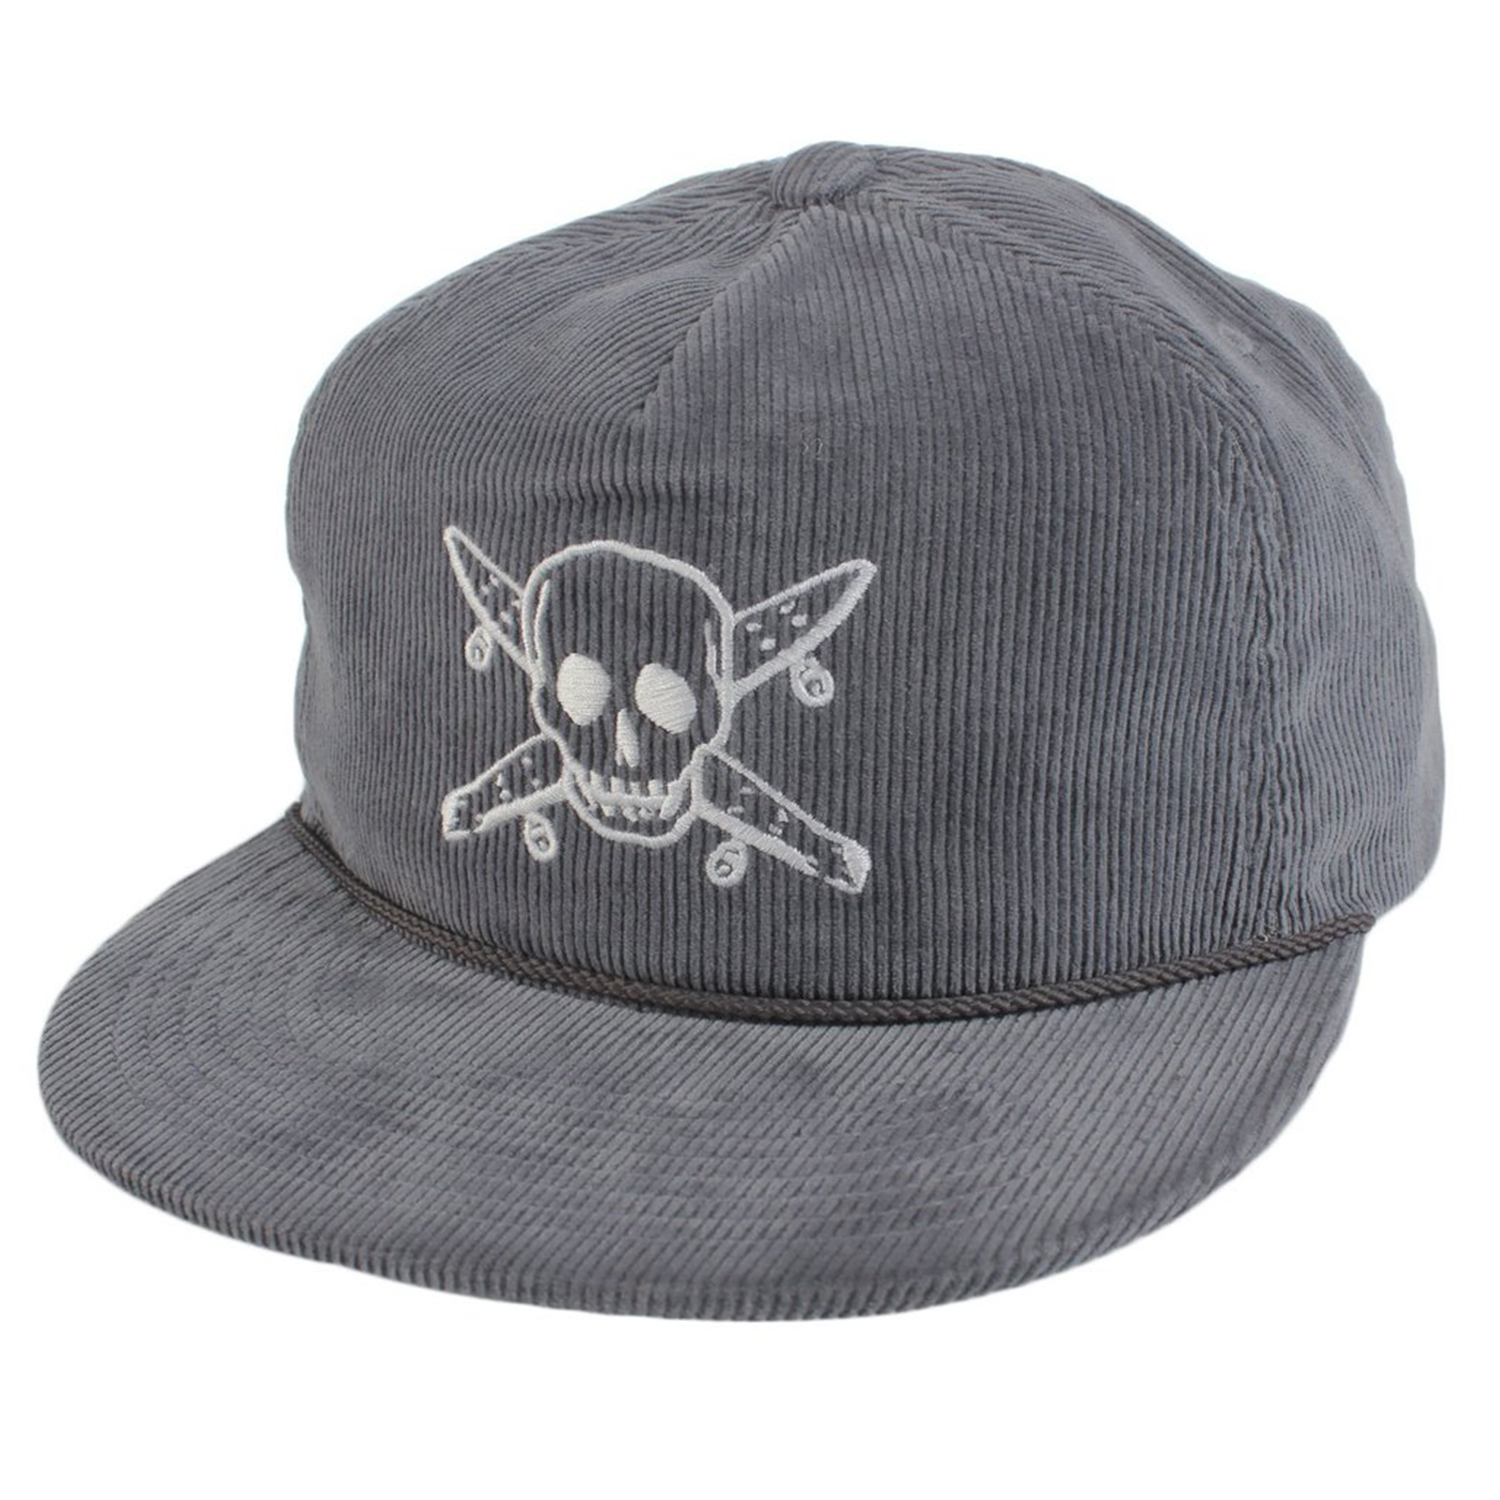 Gorra Fourstar - Pirate Cord Grey